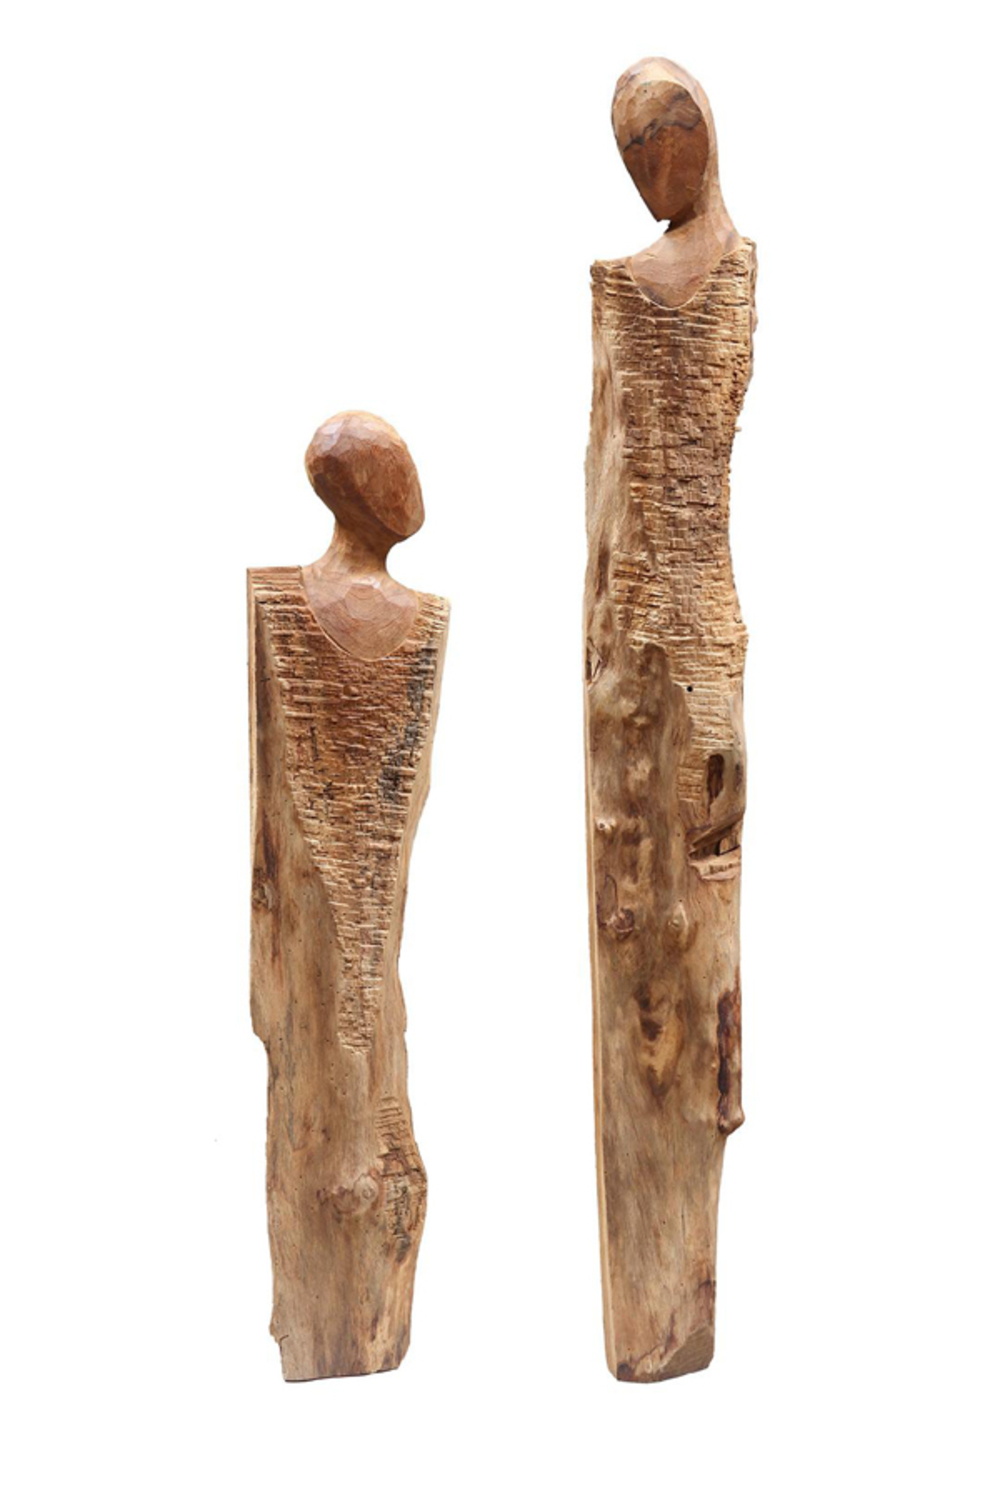 Dovetail Furniture - Wooden Sculpture